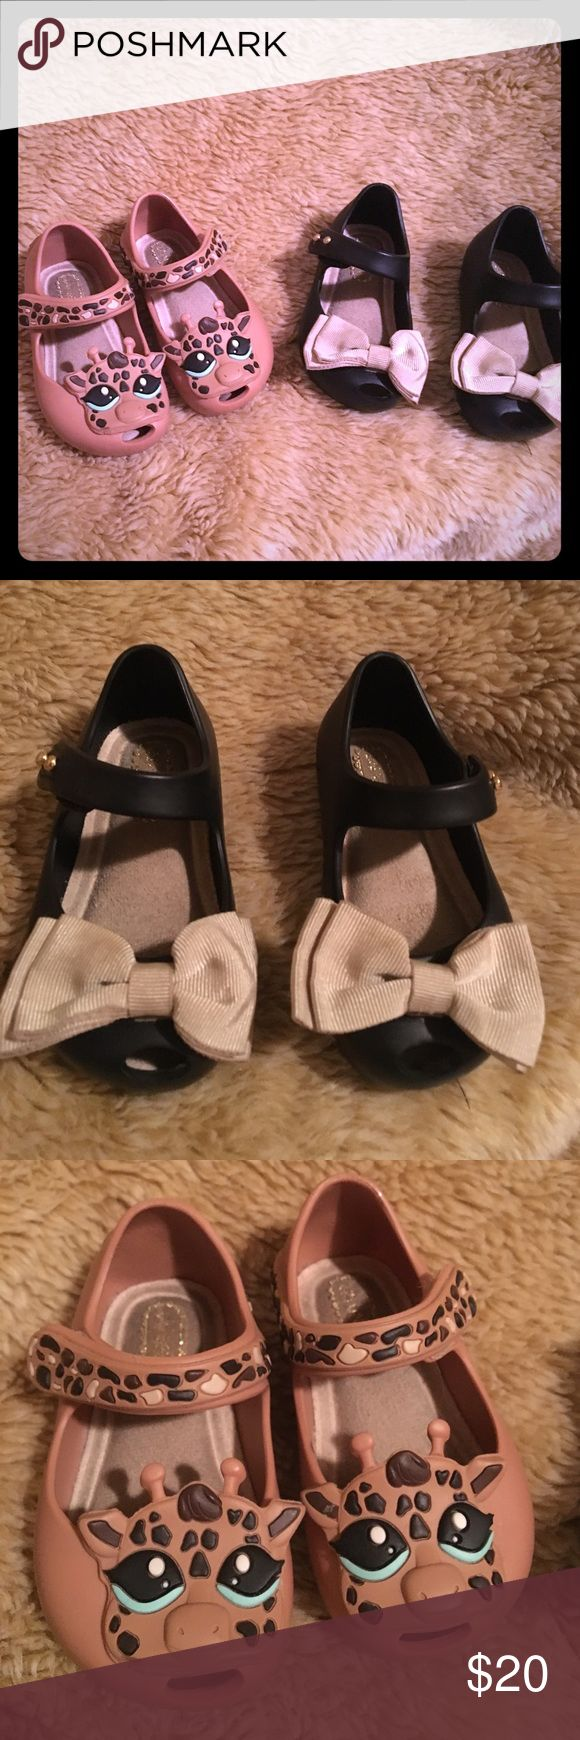 Adorable Mini Melissa shoes! Up for sale 2 pairs (or individual) of infant/baby girls mini Melissa shoes. Originally purchased for Nordstrom.  Giraffe shoes are size 5 and bow shoes are size 5 as well. Great condition. Only minor wear Mini Melissa Shoes Baby & Walker